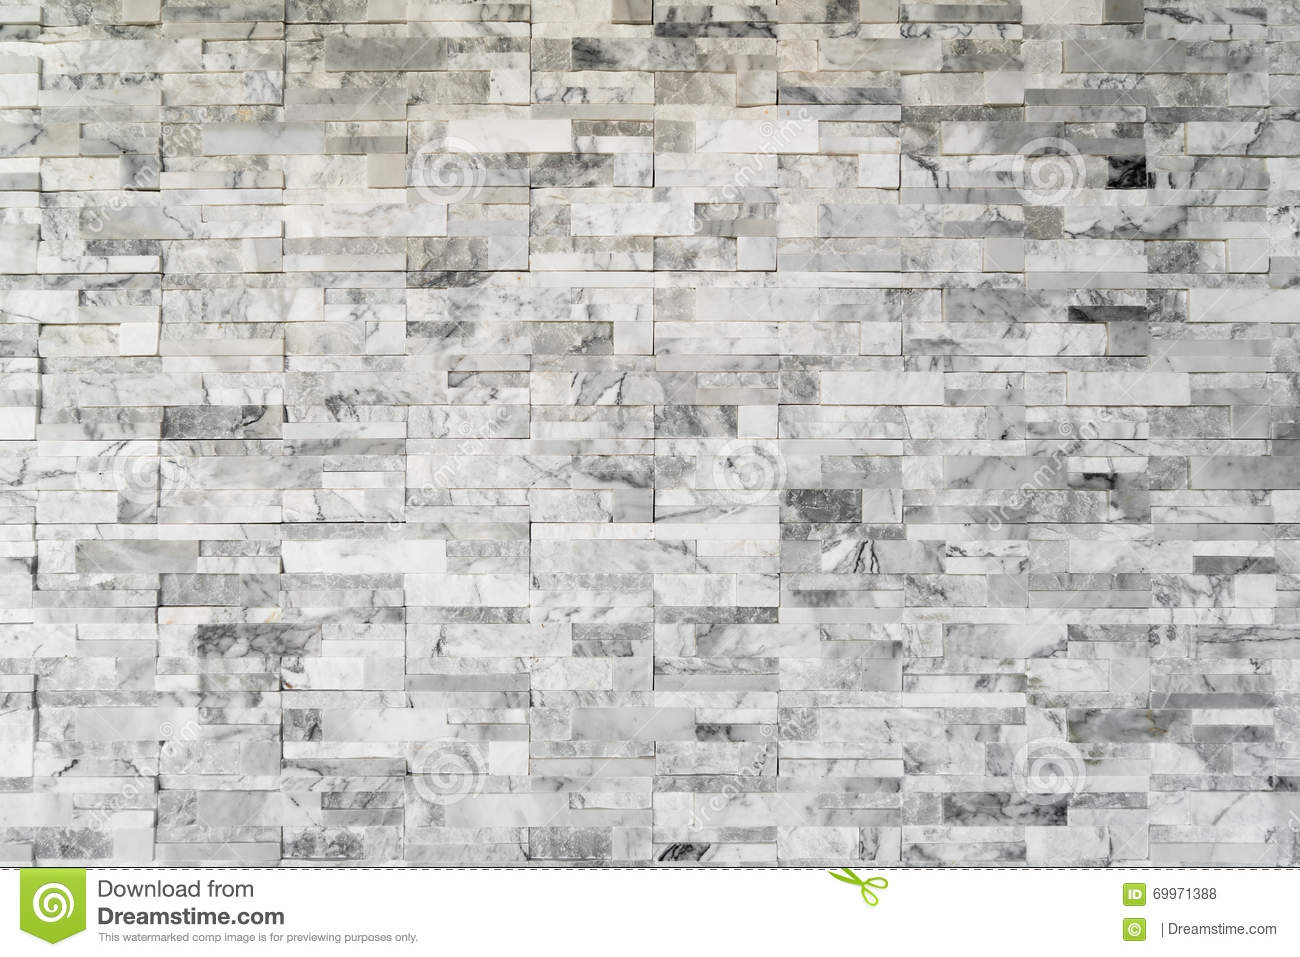 Mur int rieur de texture en pierre photo stock image - Mur de pierre naturelle interieur ...